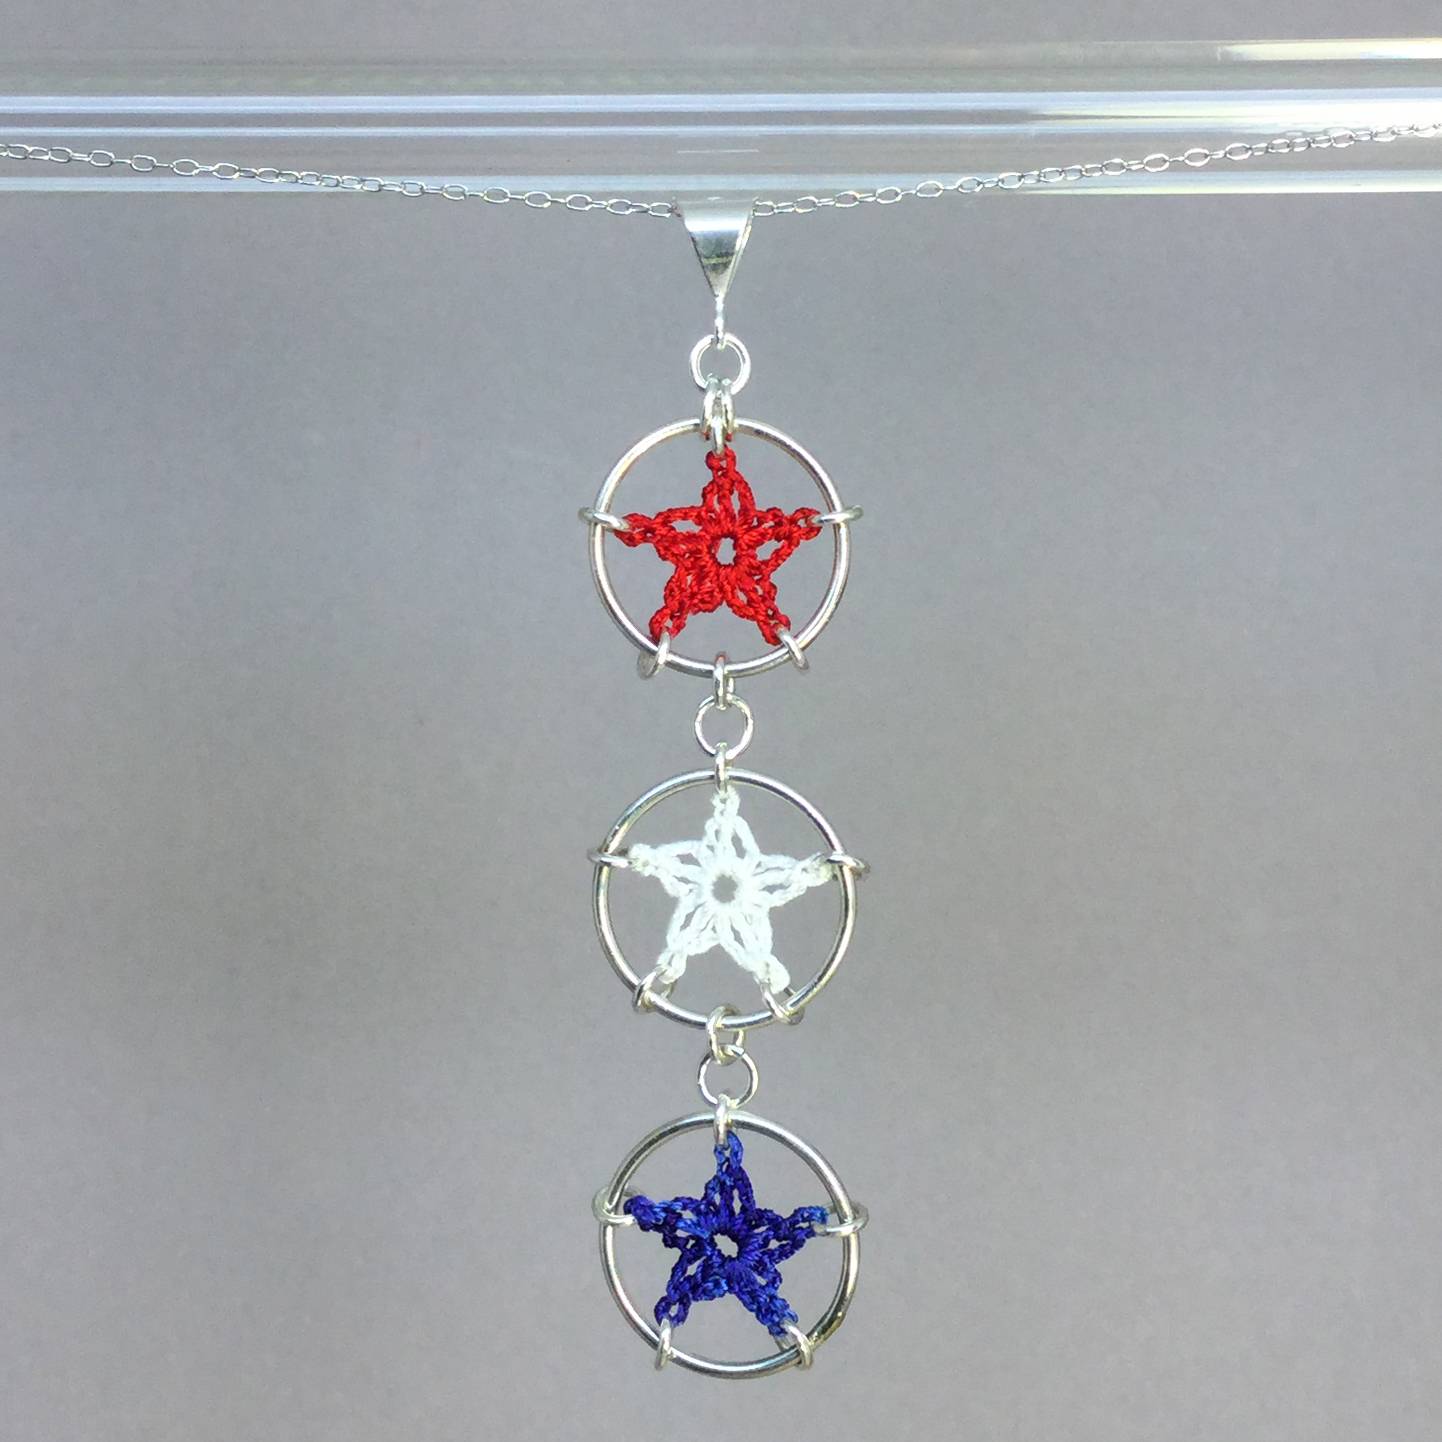 Stars necklace, silver, red white blue